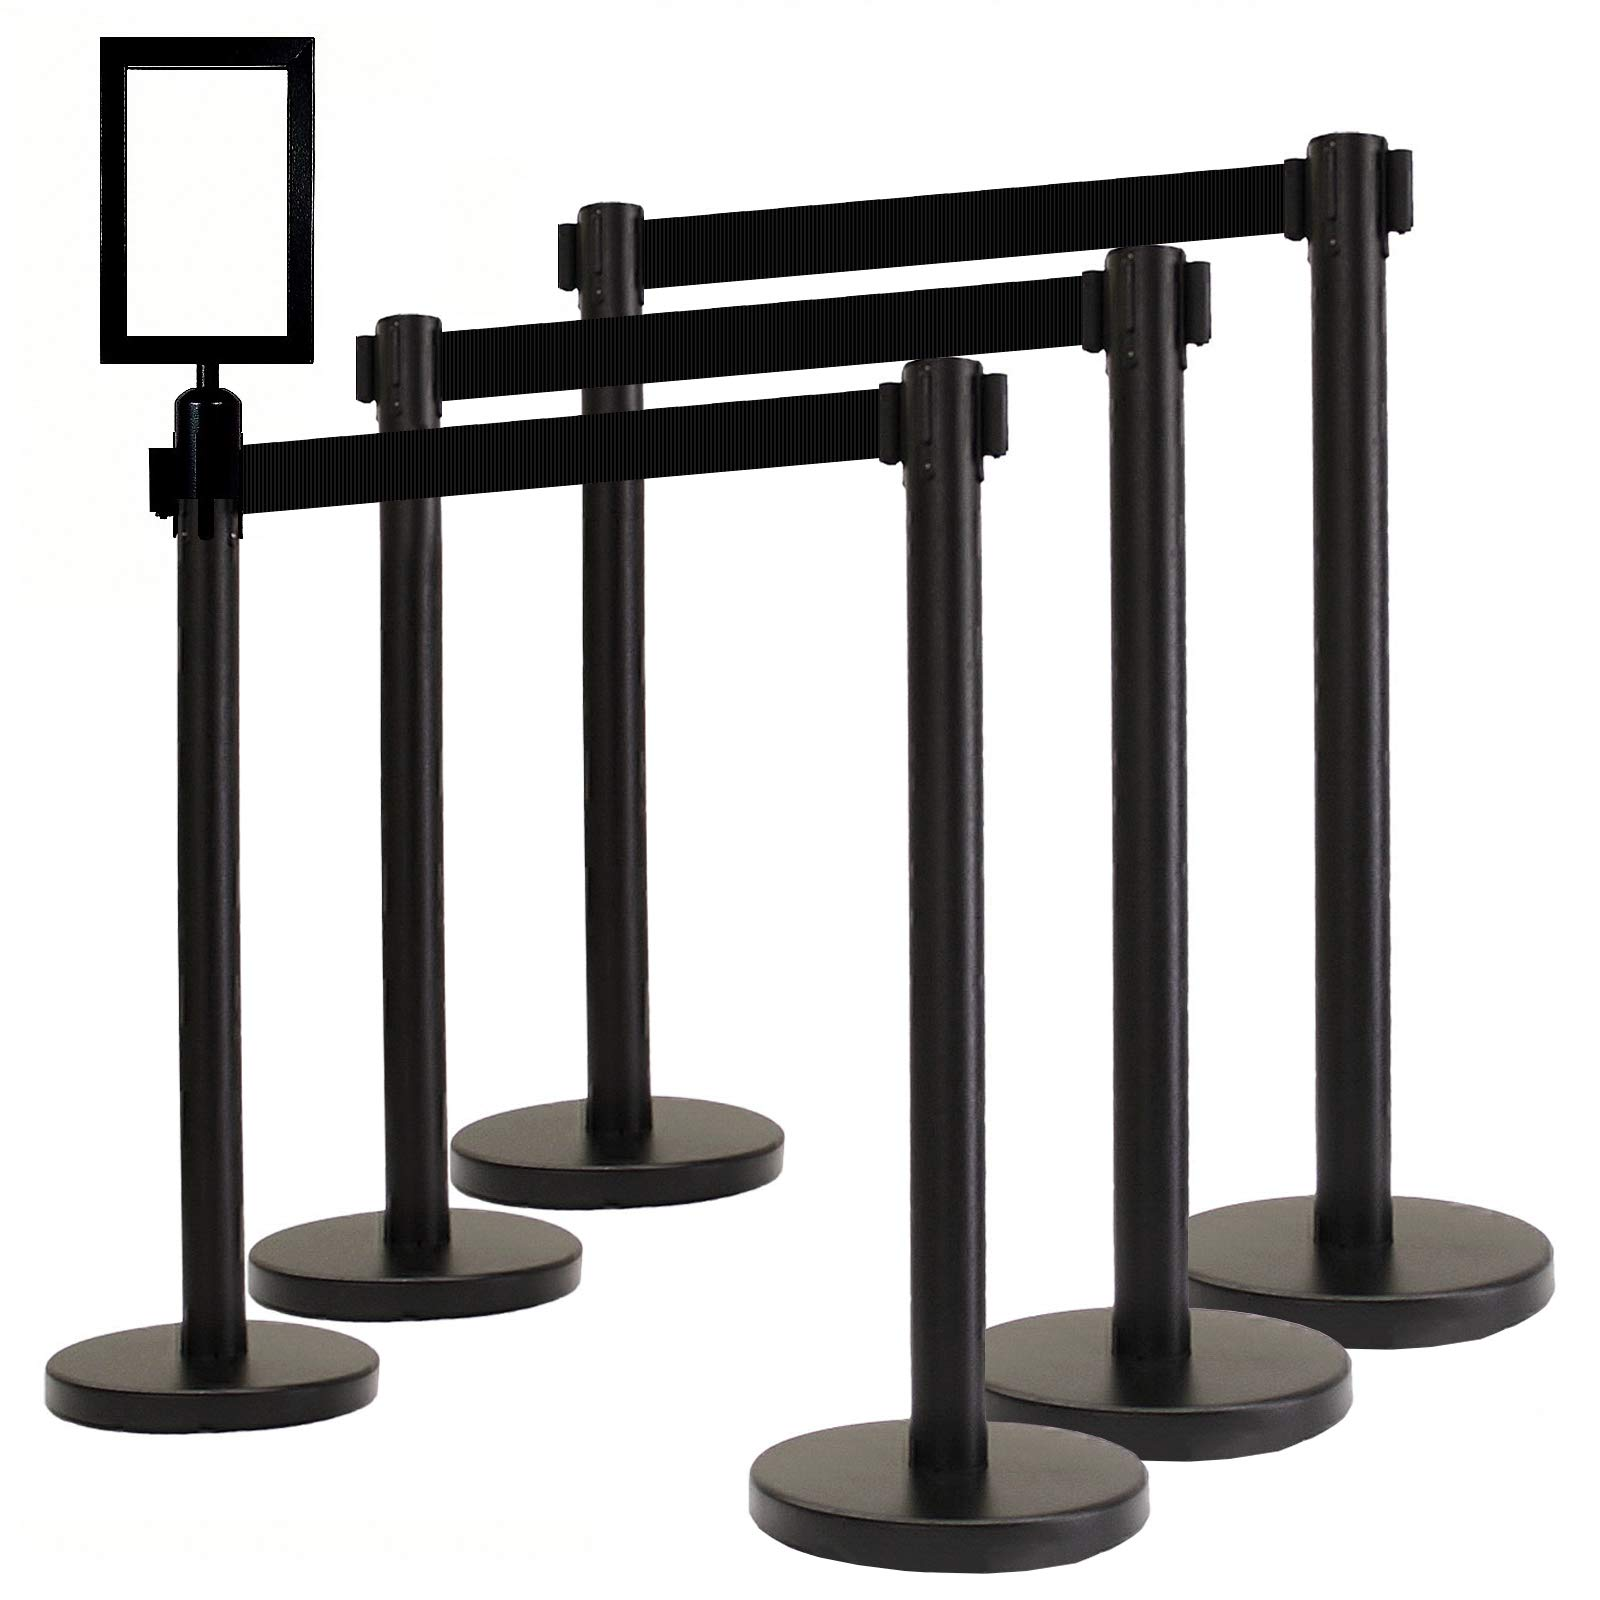 VIP Crowd Control Retractable Belt Queue Safety Stanchion Barrier Set, 36'' Ht, 78'' Black Belt + Wall Bracket (6 Posts Belt+SFrame+WBracket) by Crowd Control Center